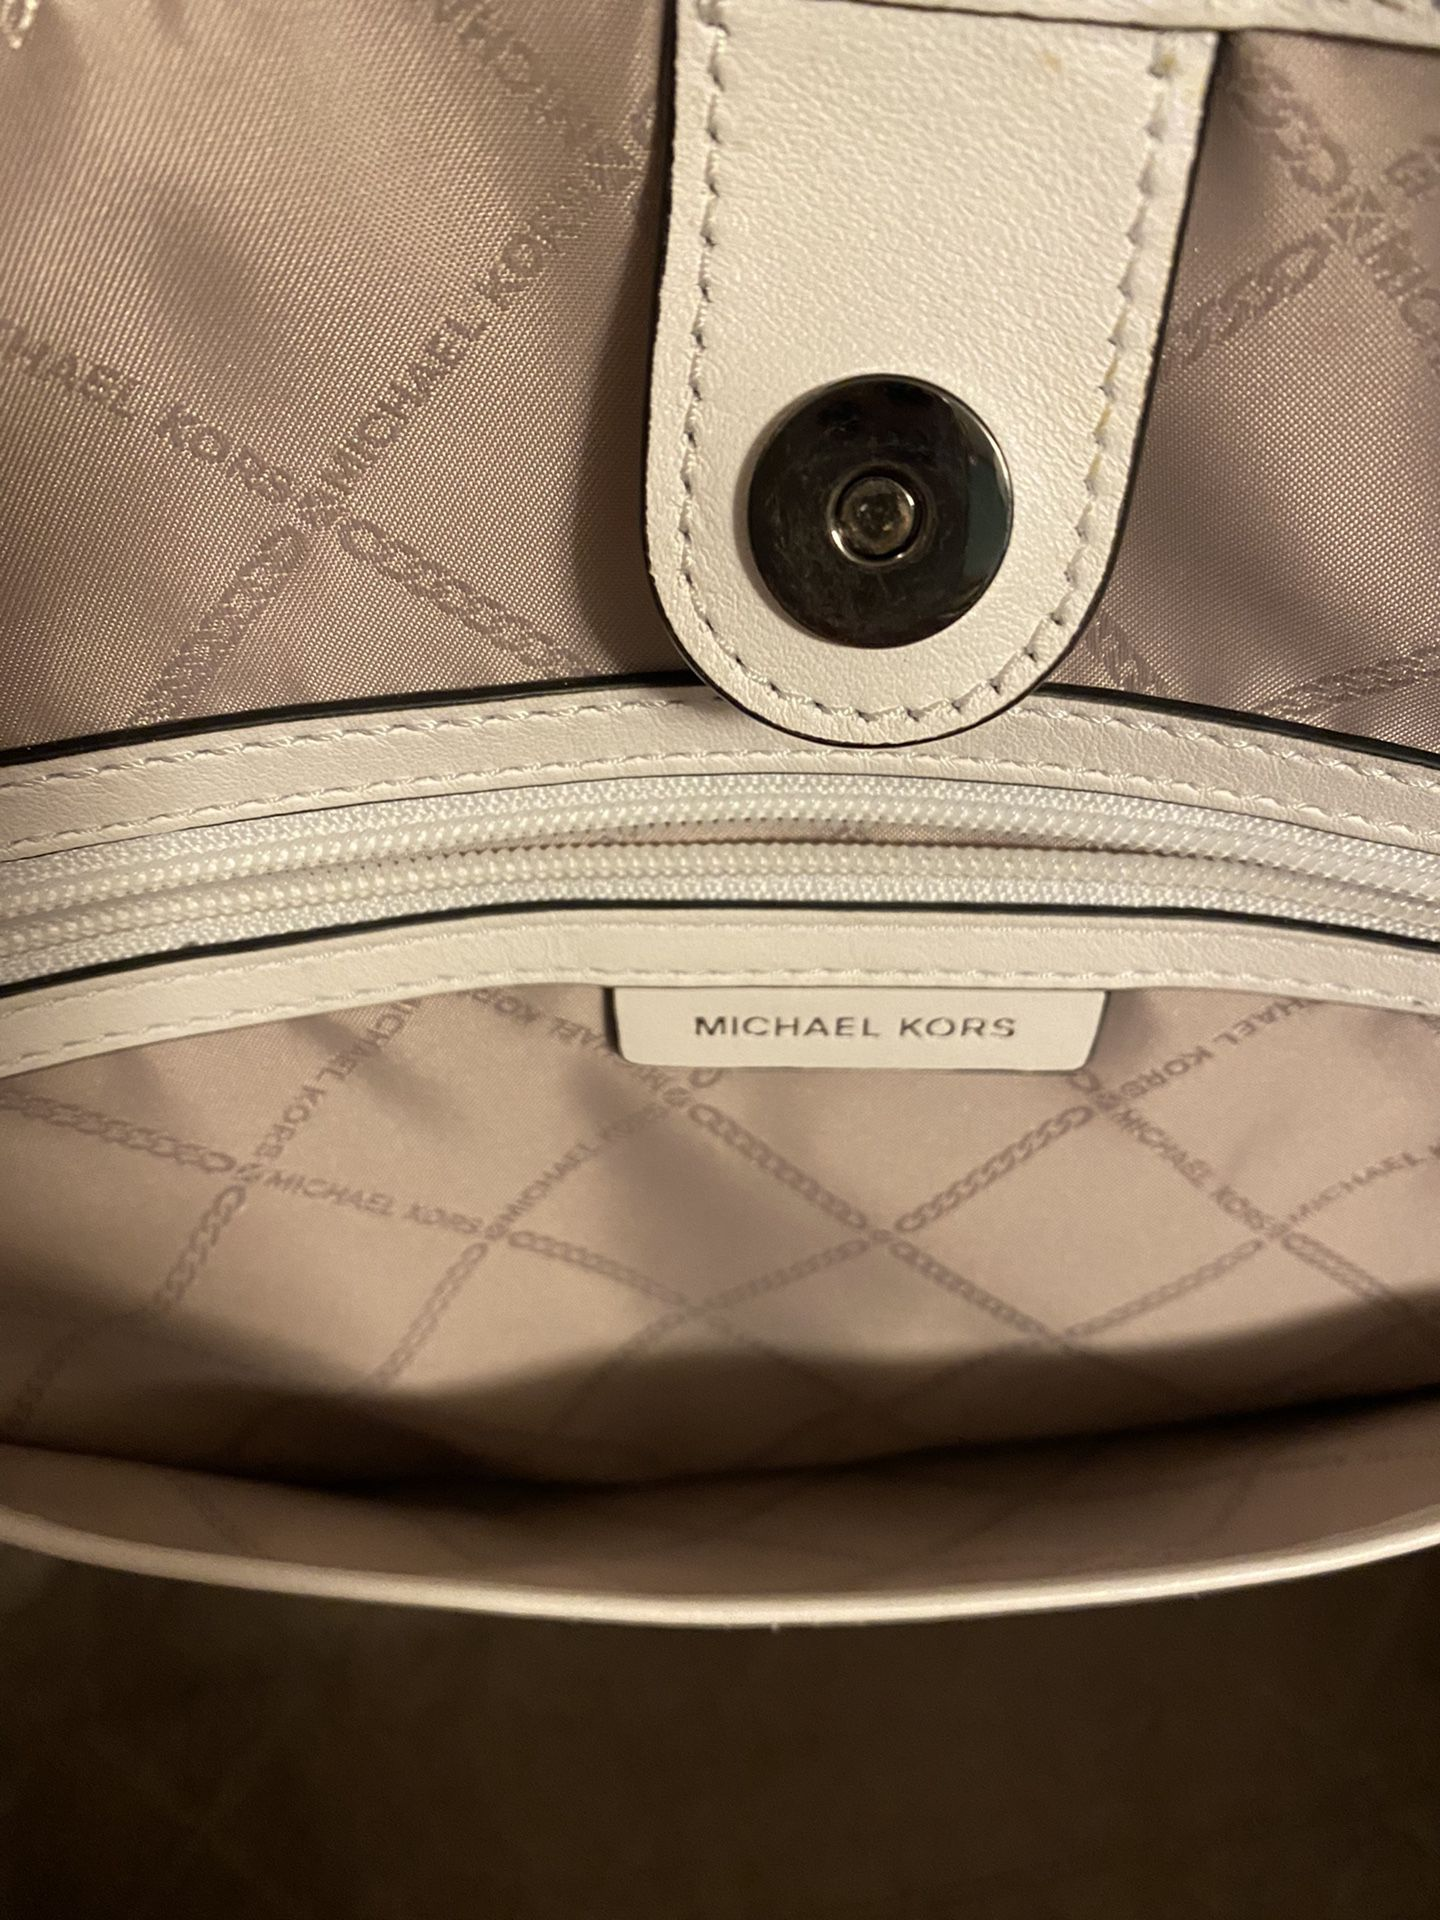 Michael Kors with matching wallet